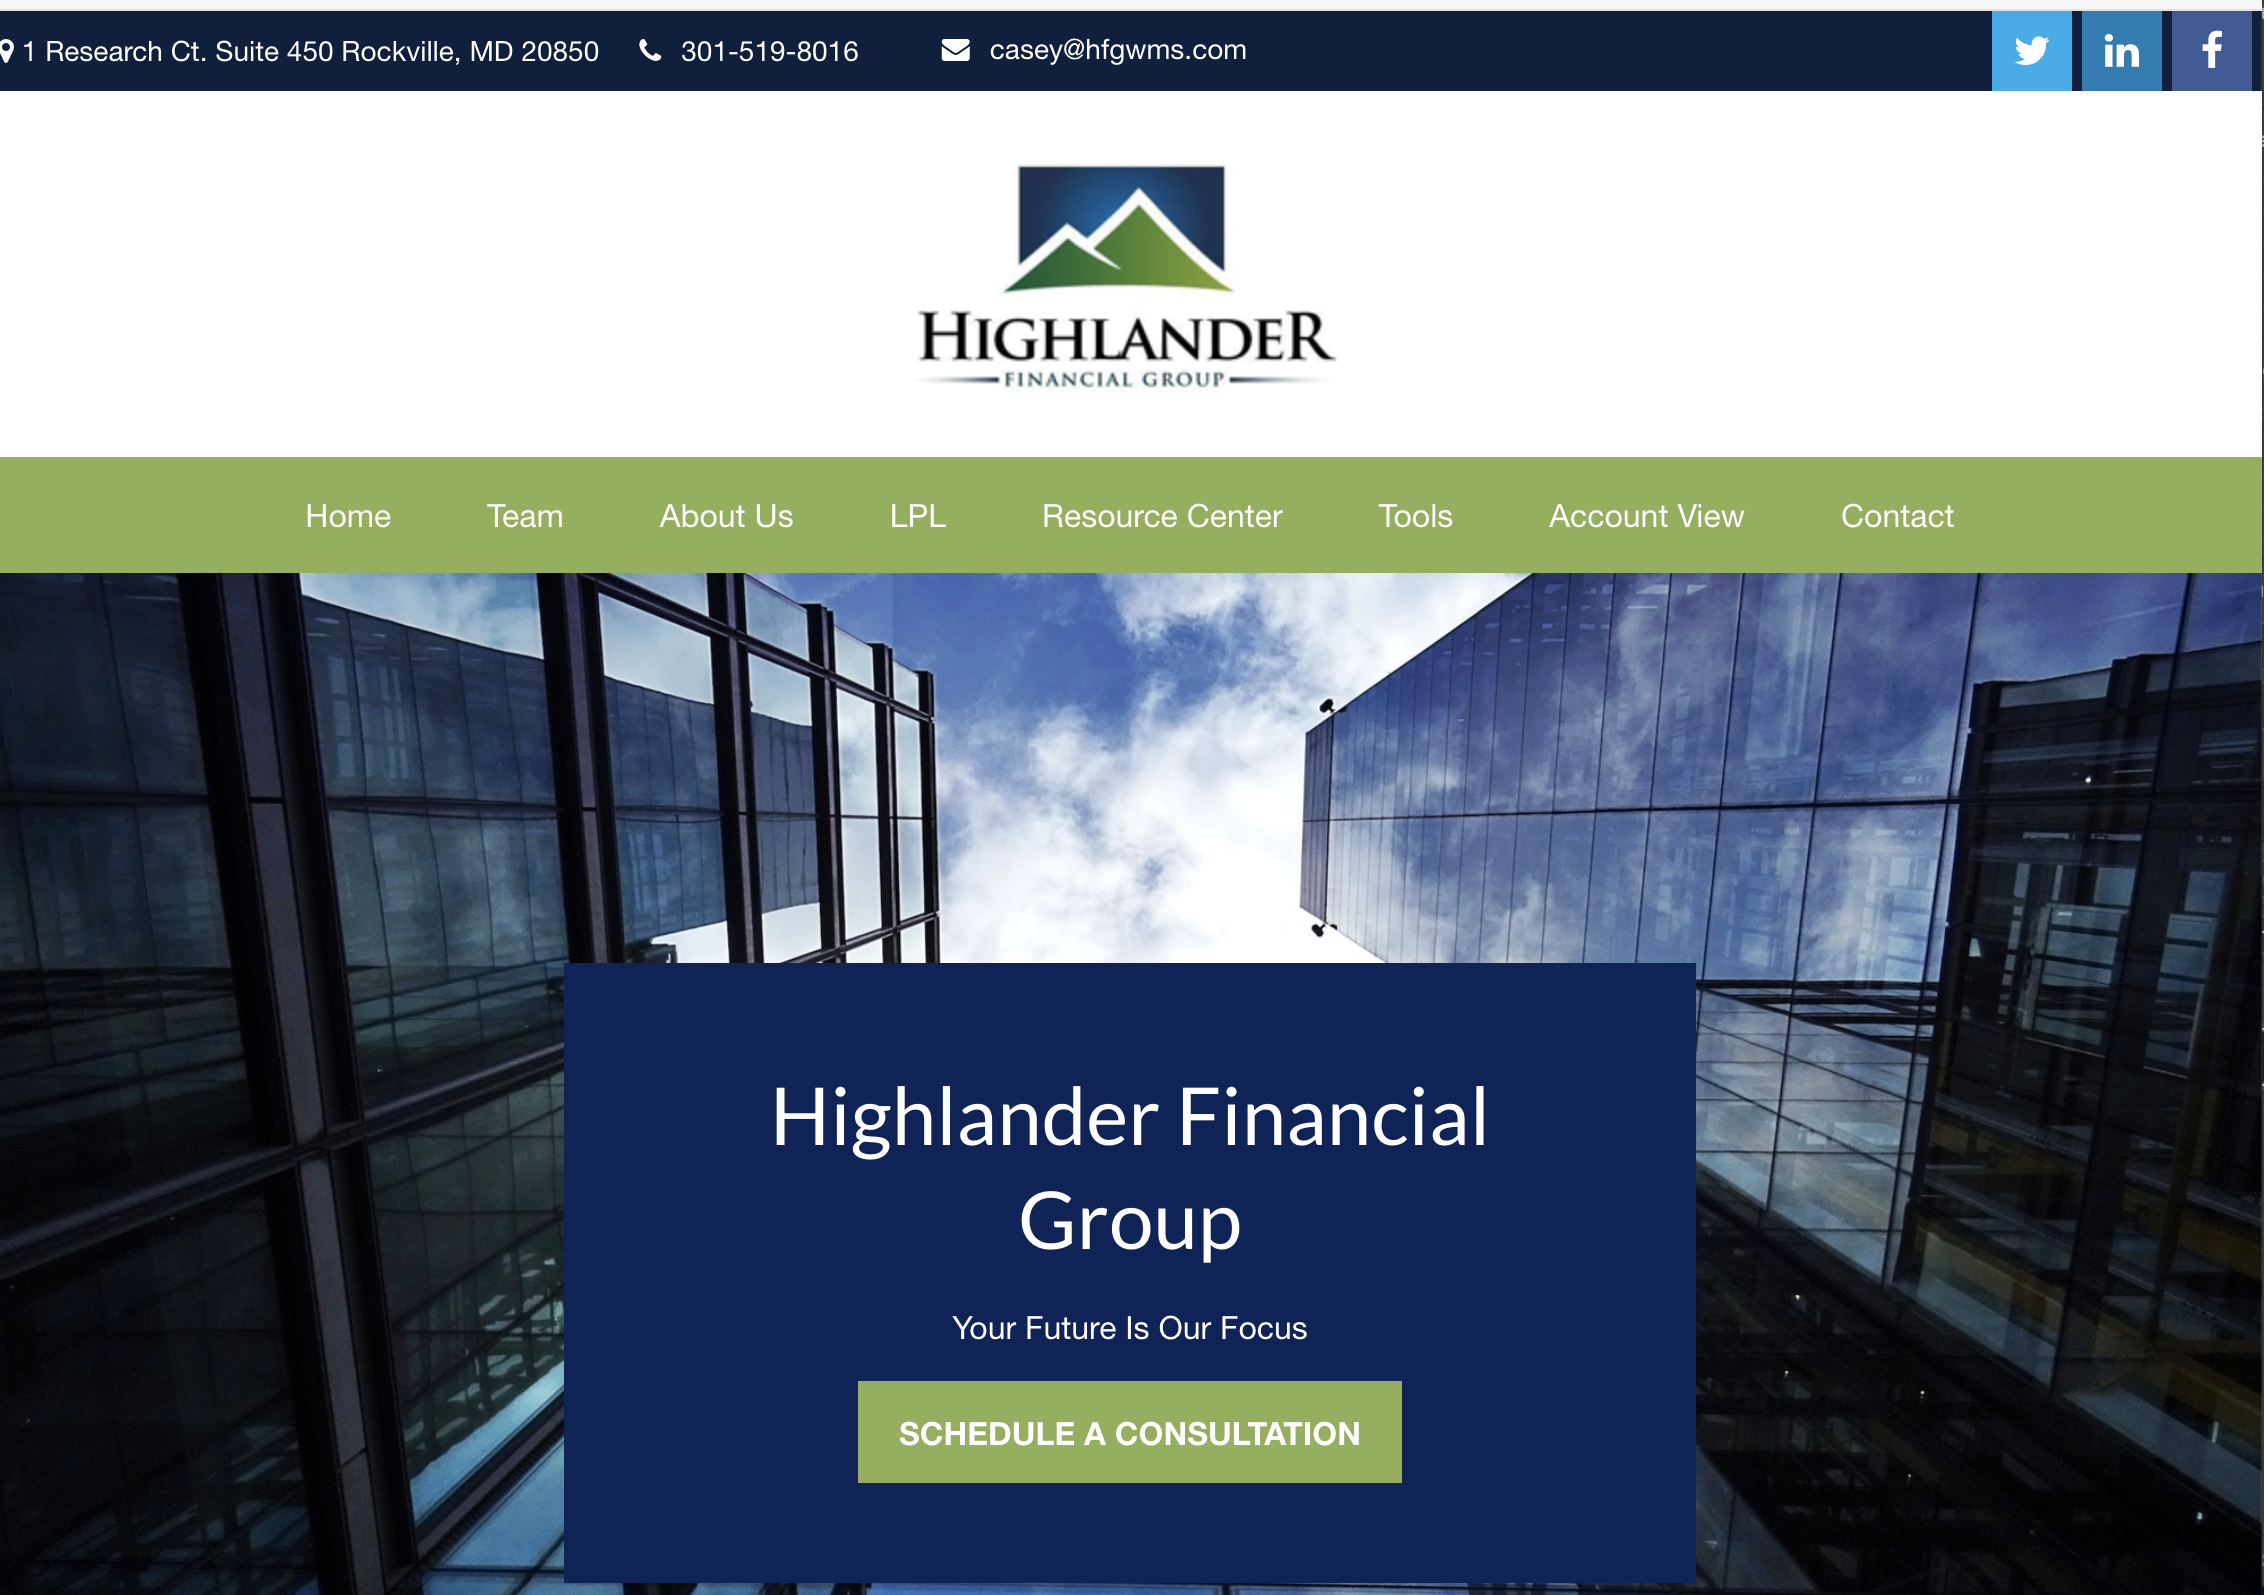 Highlander Financial